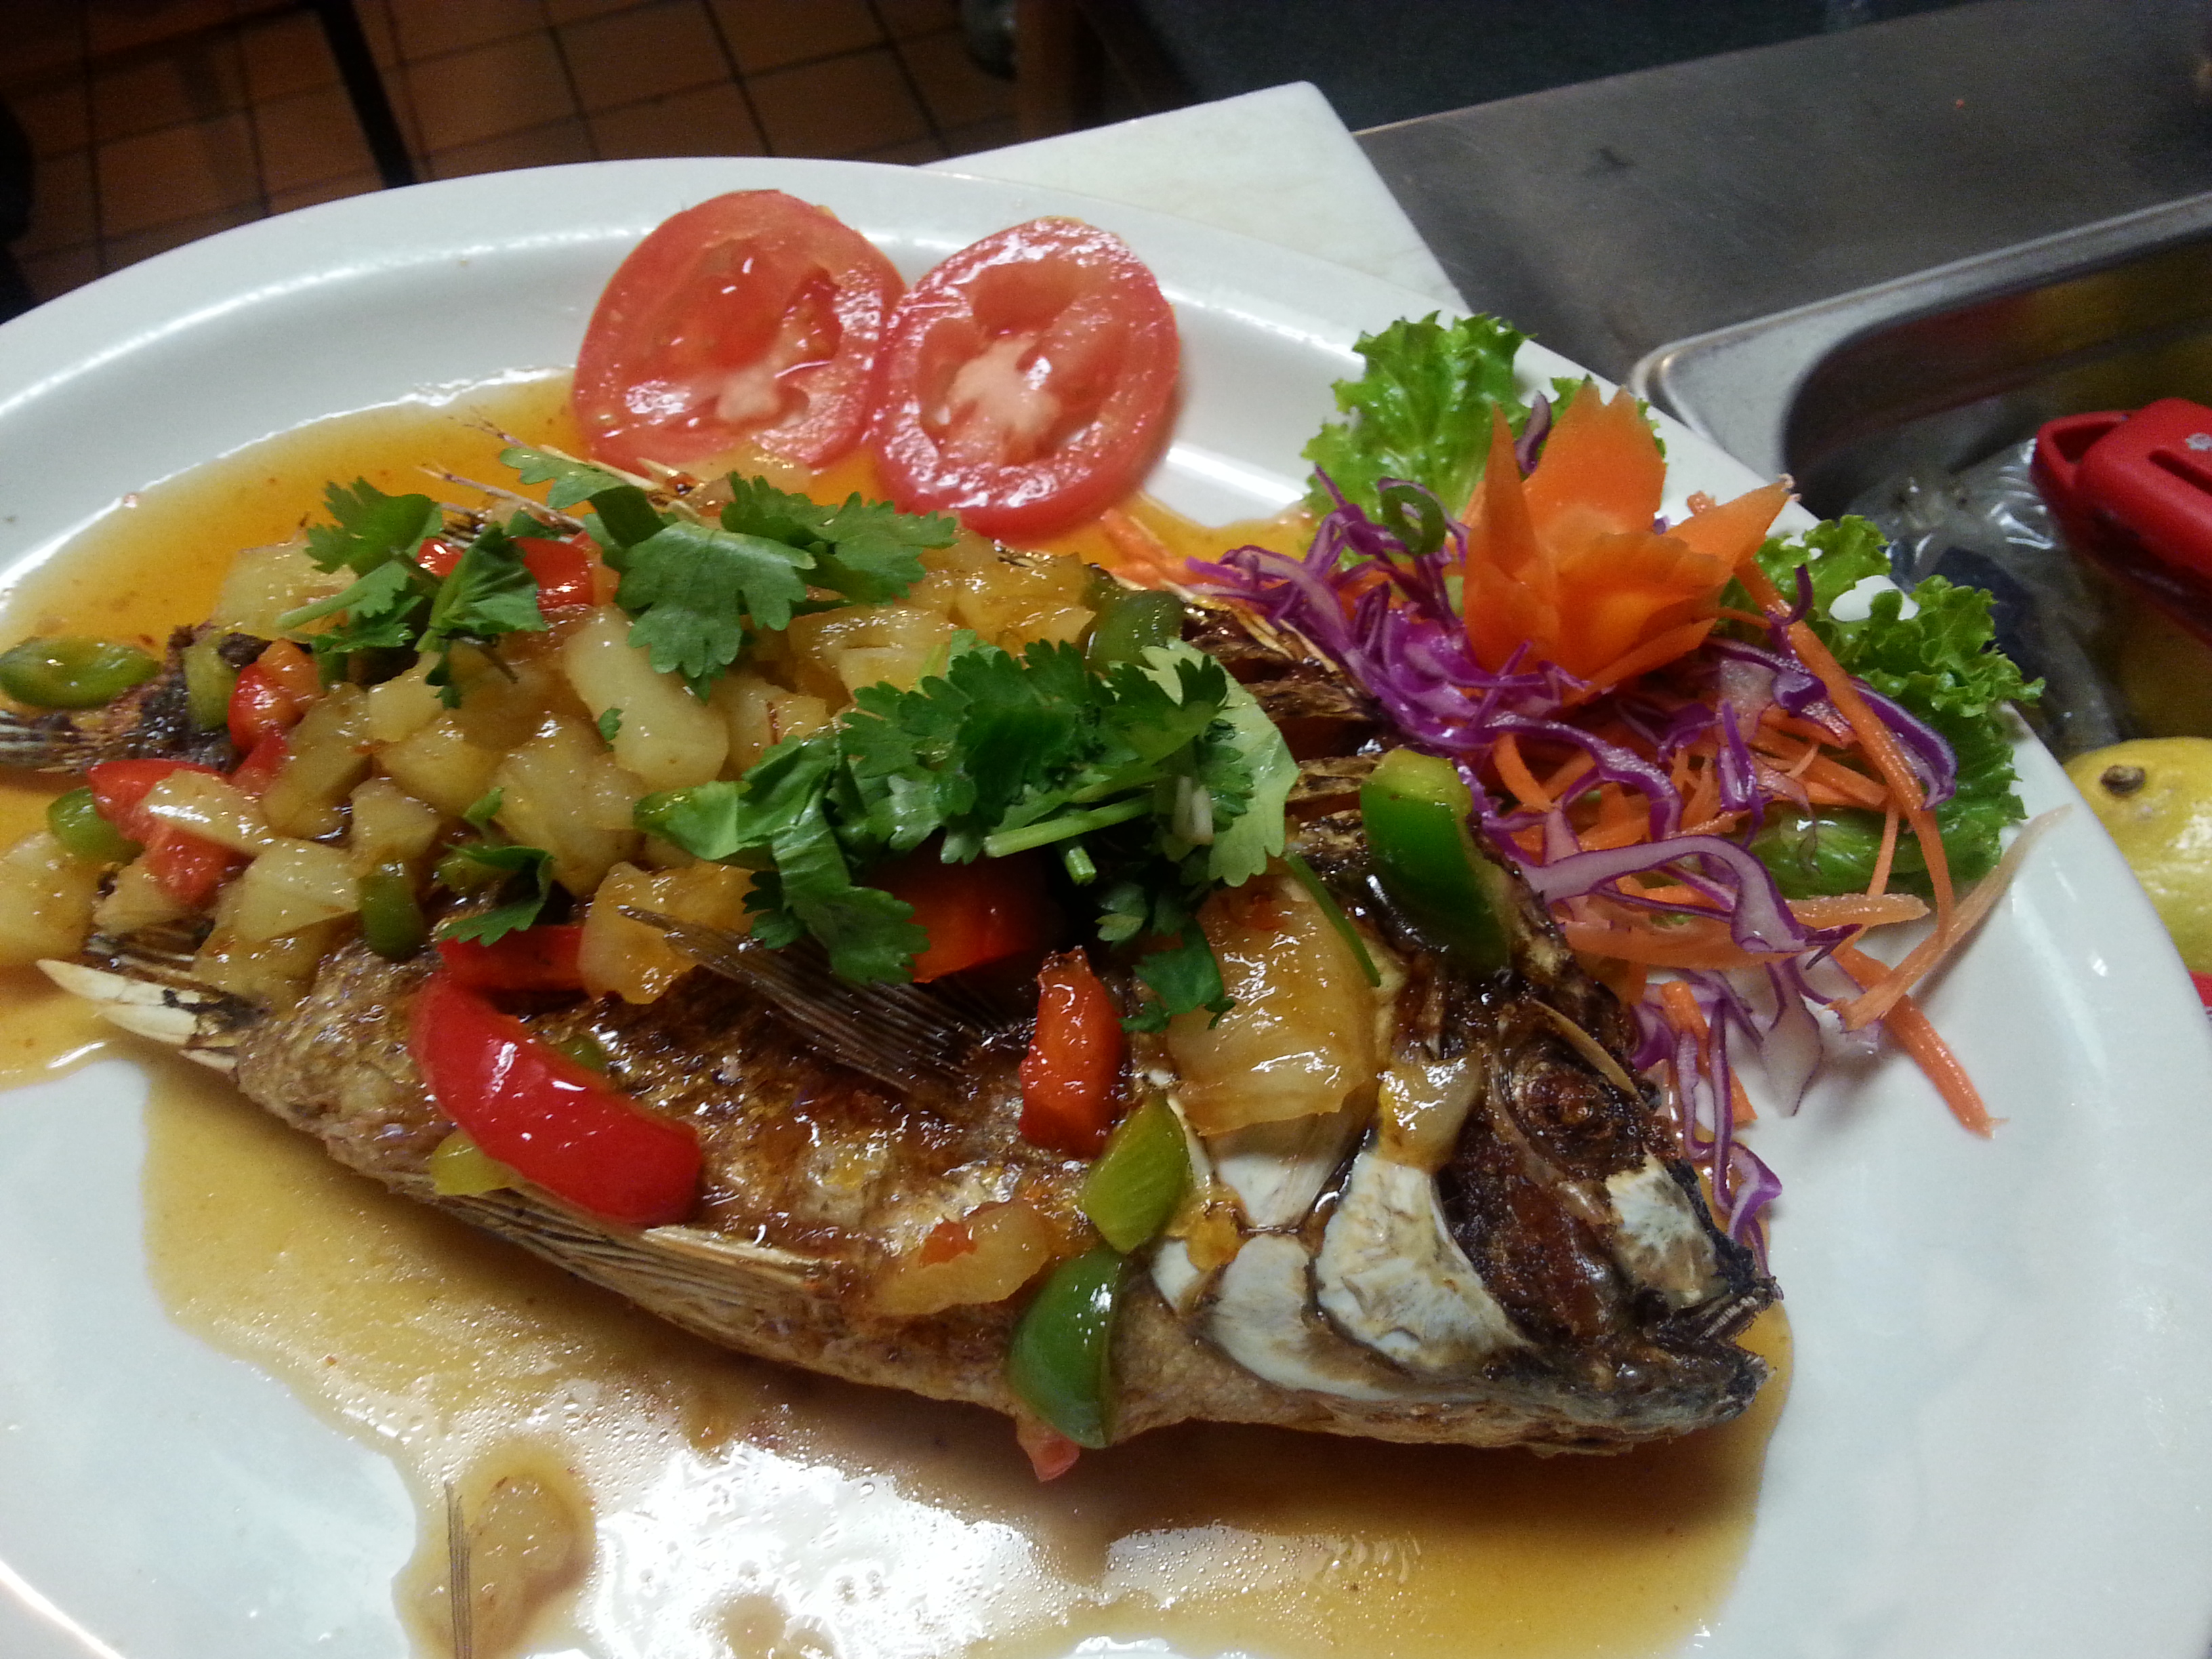 SPECIAL DEEP FRIED TILAPIA SWEET AND SOUR